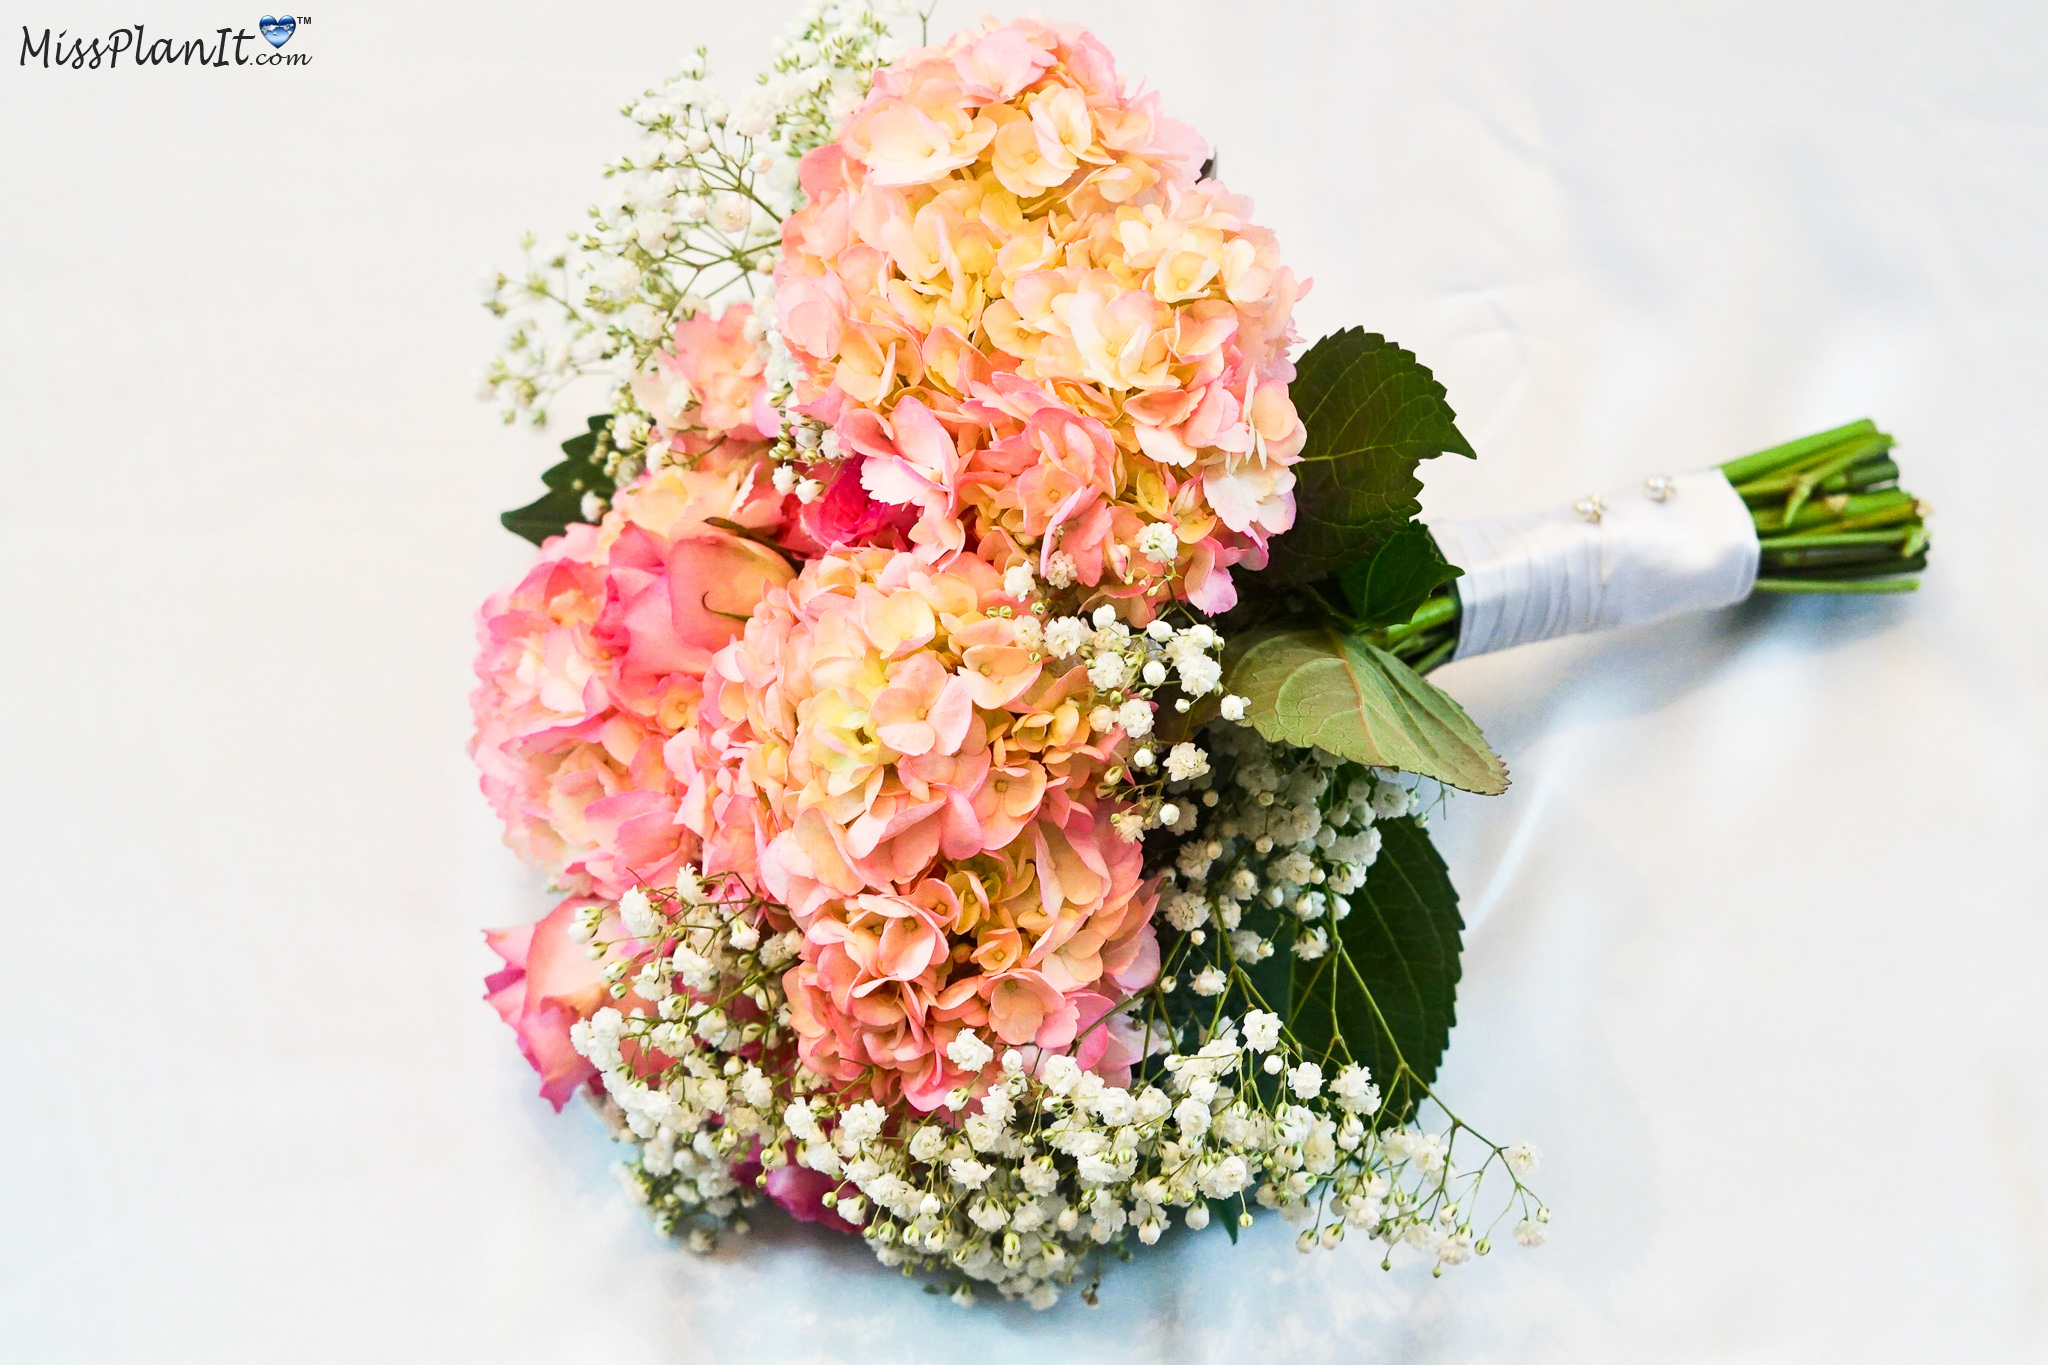 Diy Vintage Fresh Flower Bridal Bouquet For Under 35